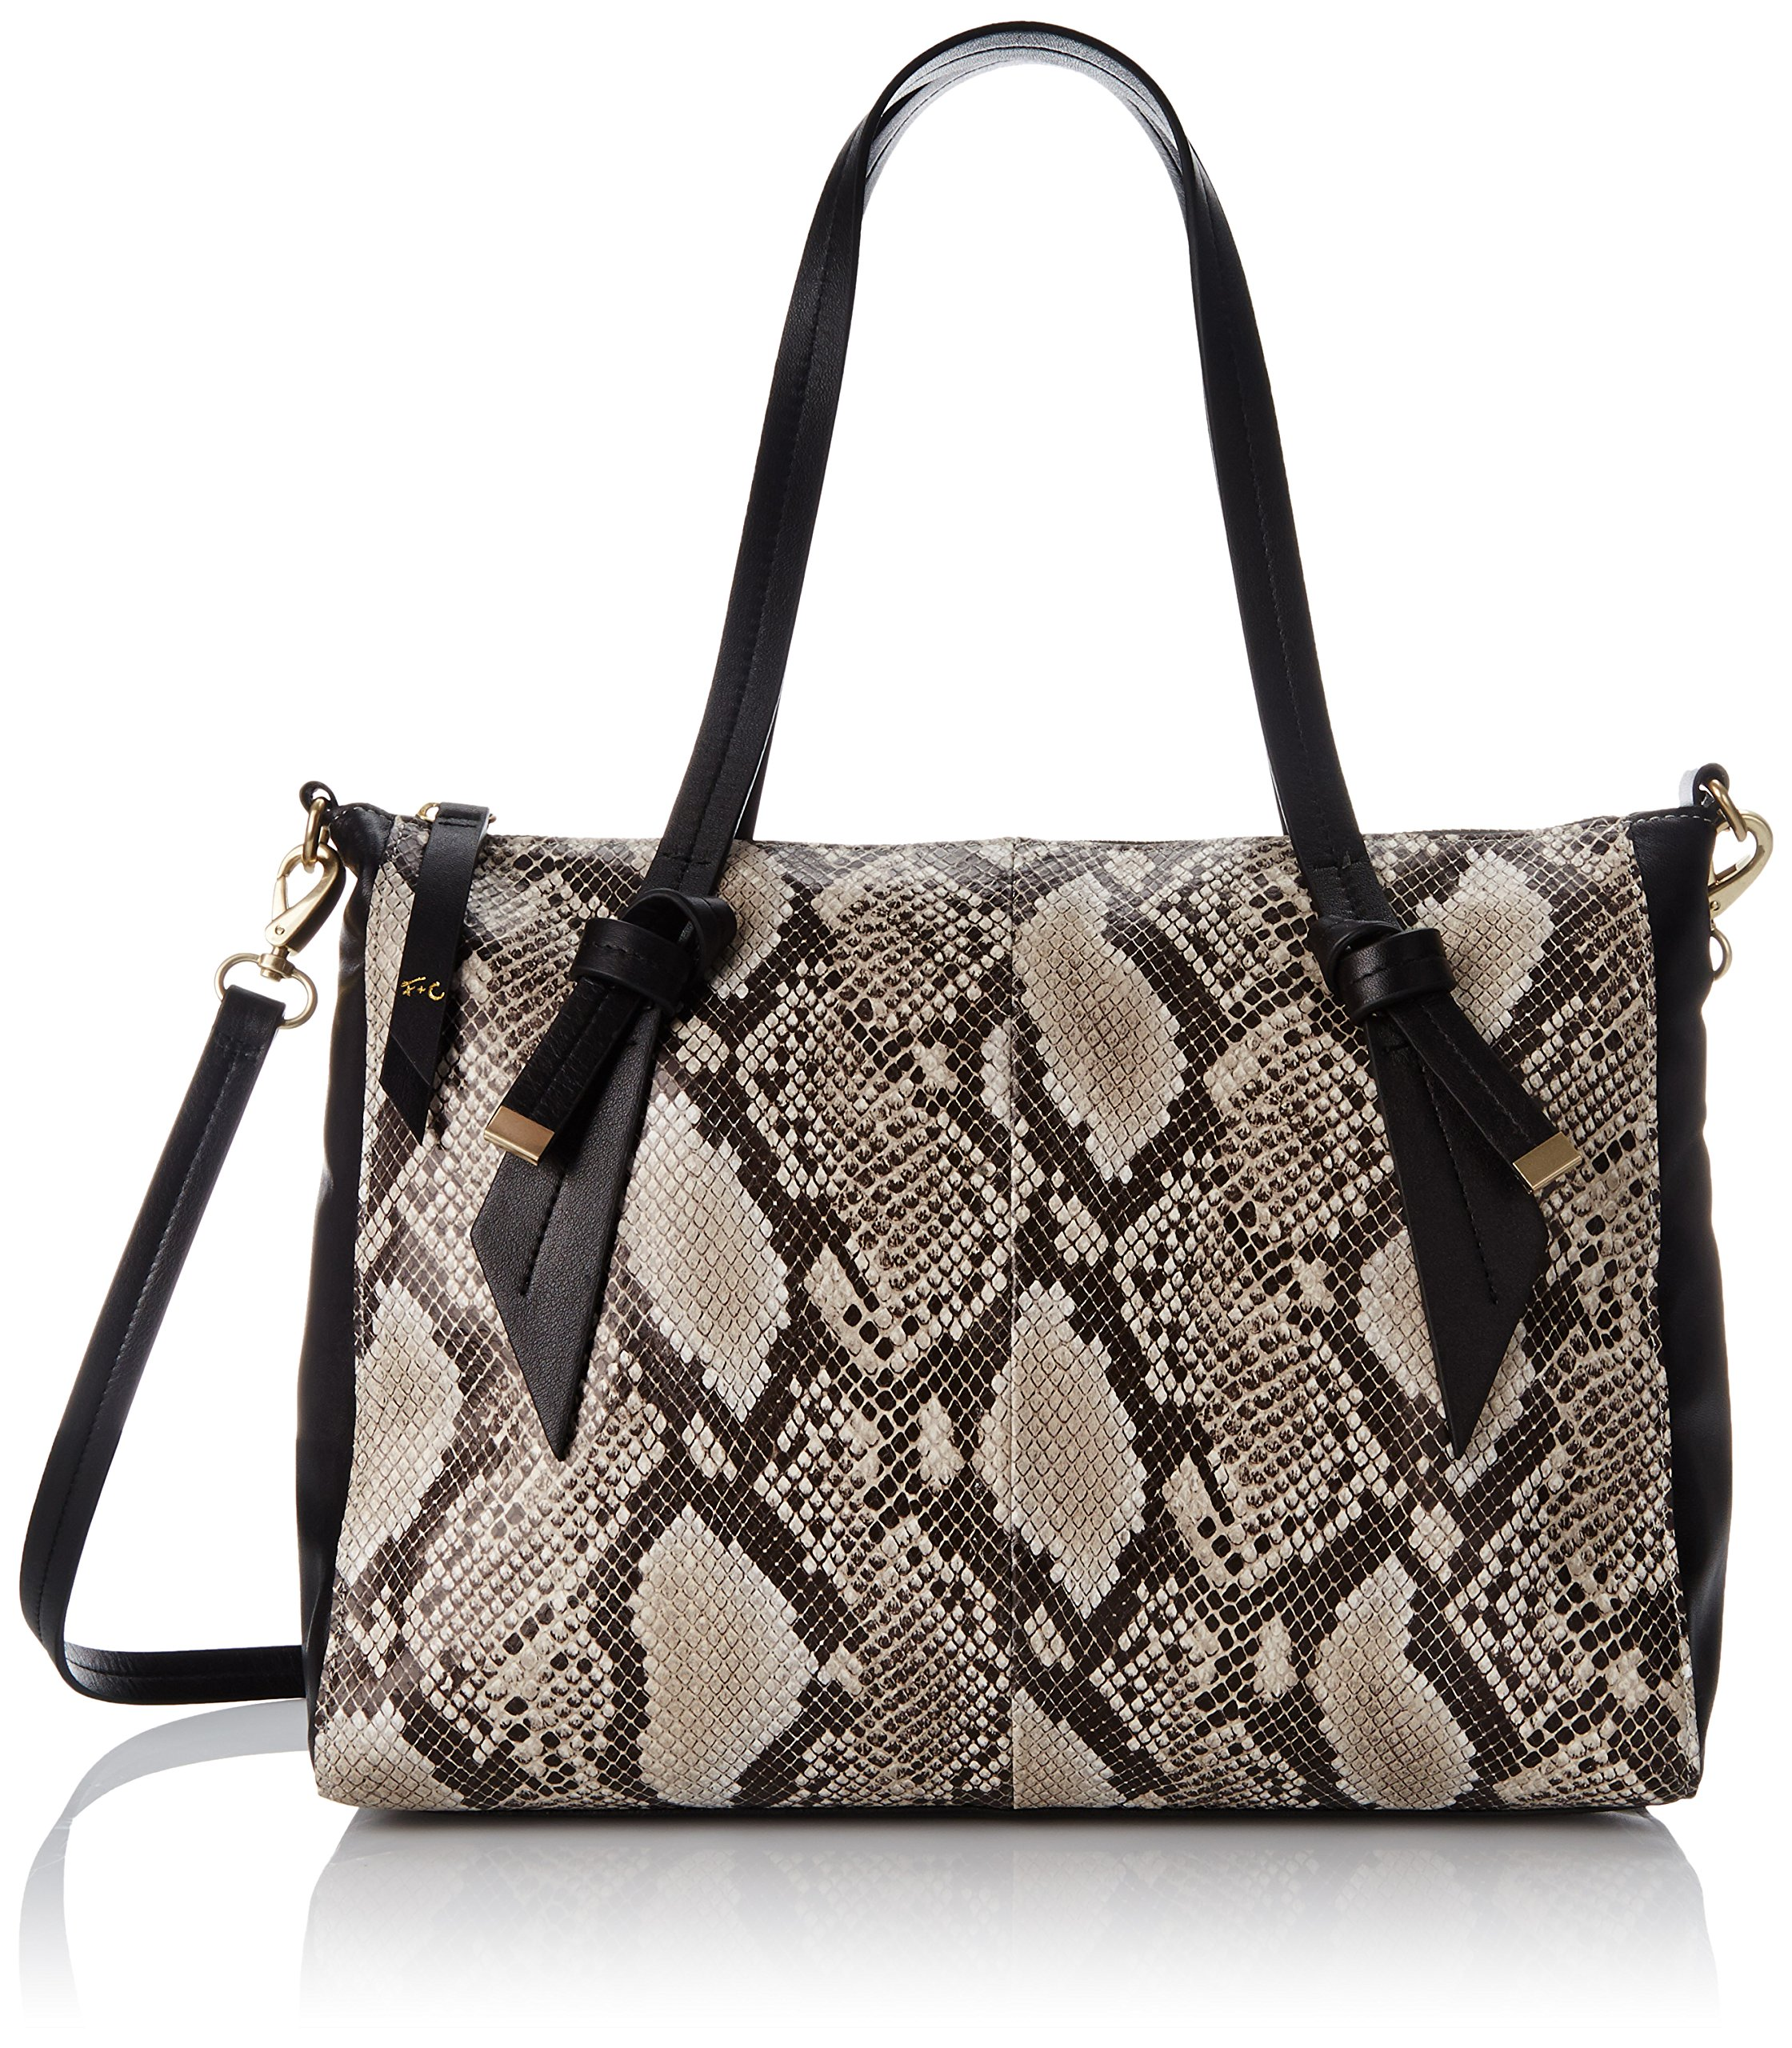 Foley + Corinna Bandeau Satchel Top Handle Bag, Diamond Snake Combo, One Size